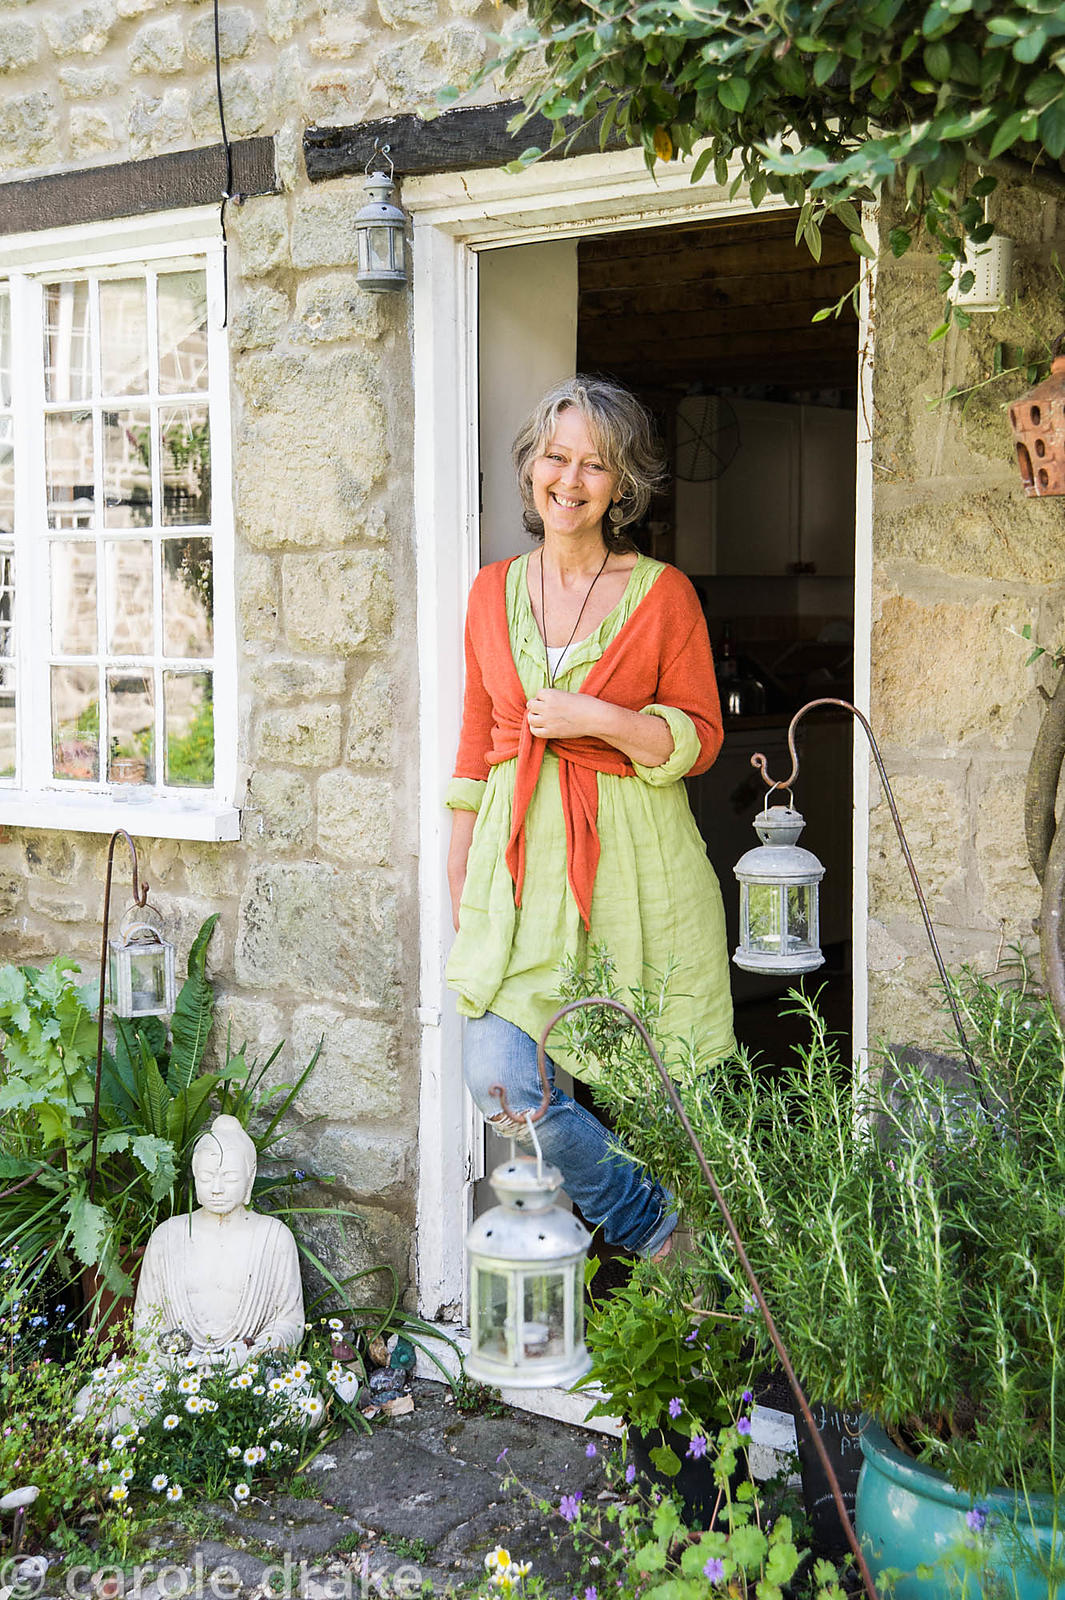 Brigit Strawbridge at the door of her rented cottage in the historic Pump Yard, St James', Shaftesbury, surrounded by plants.